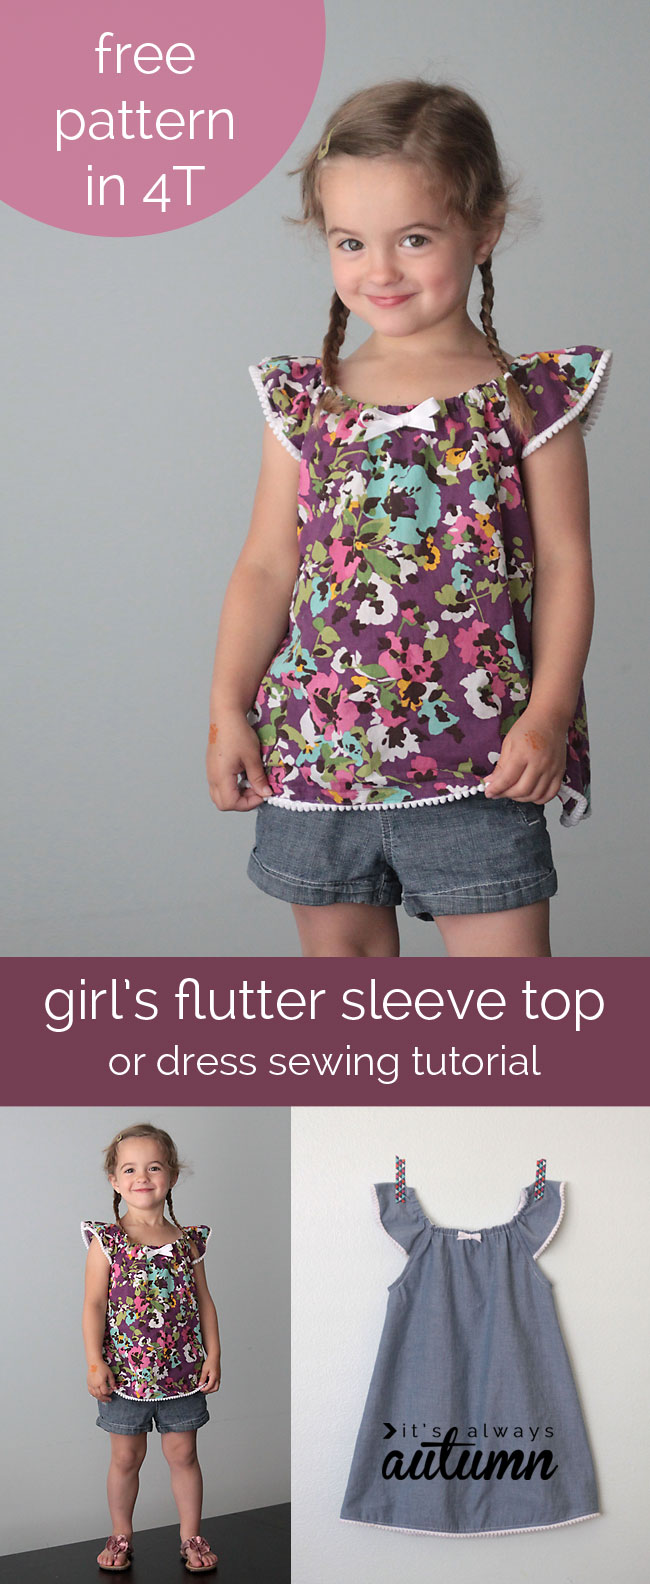 Girls flutter sleeve dress or top sewing tutorial free pattern flutter sleeve dress top how to sew girls jeuxipadfo Image collections